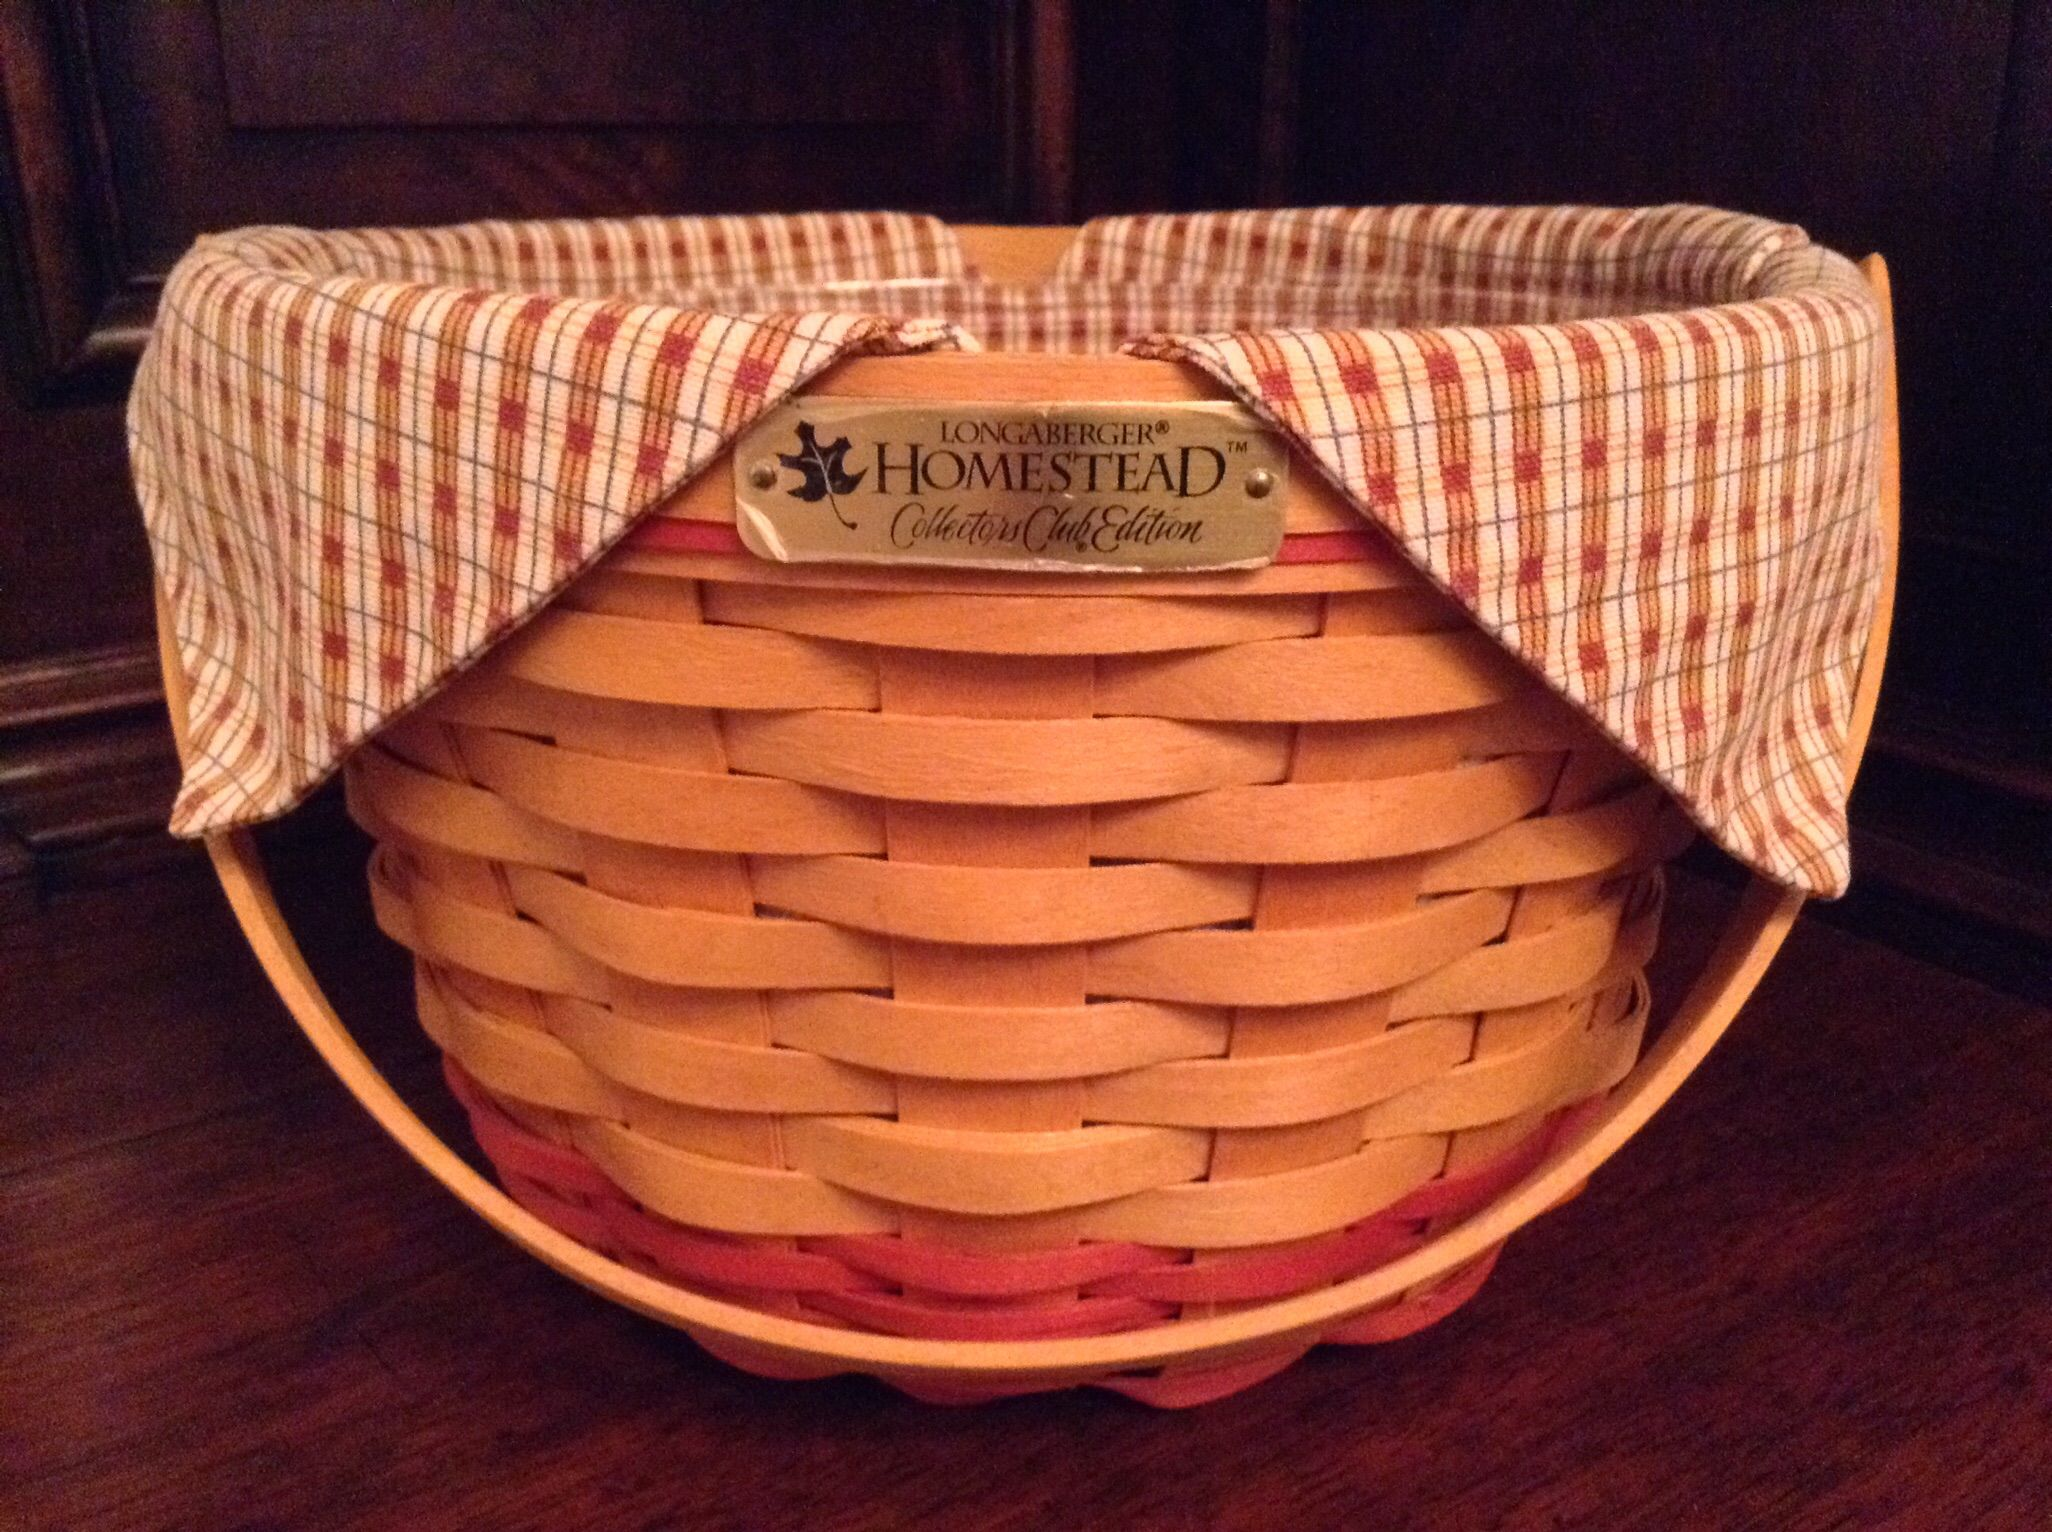 What can you do on the Longaberger Homestead?